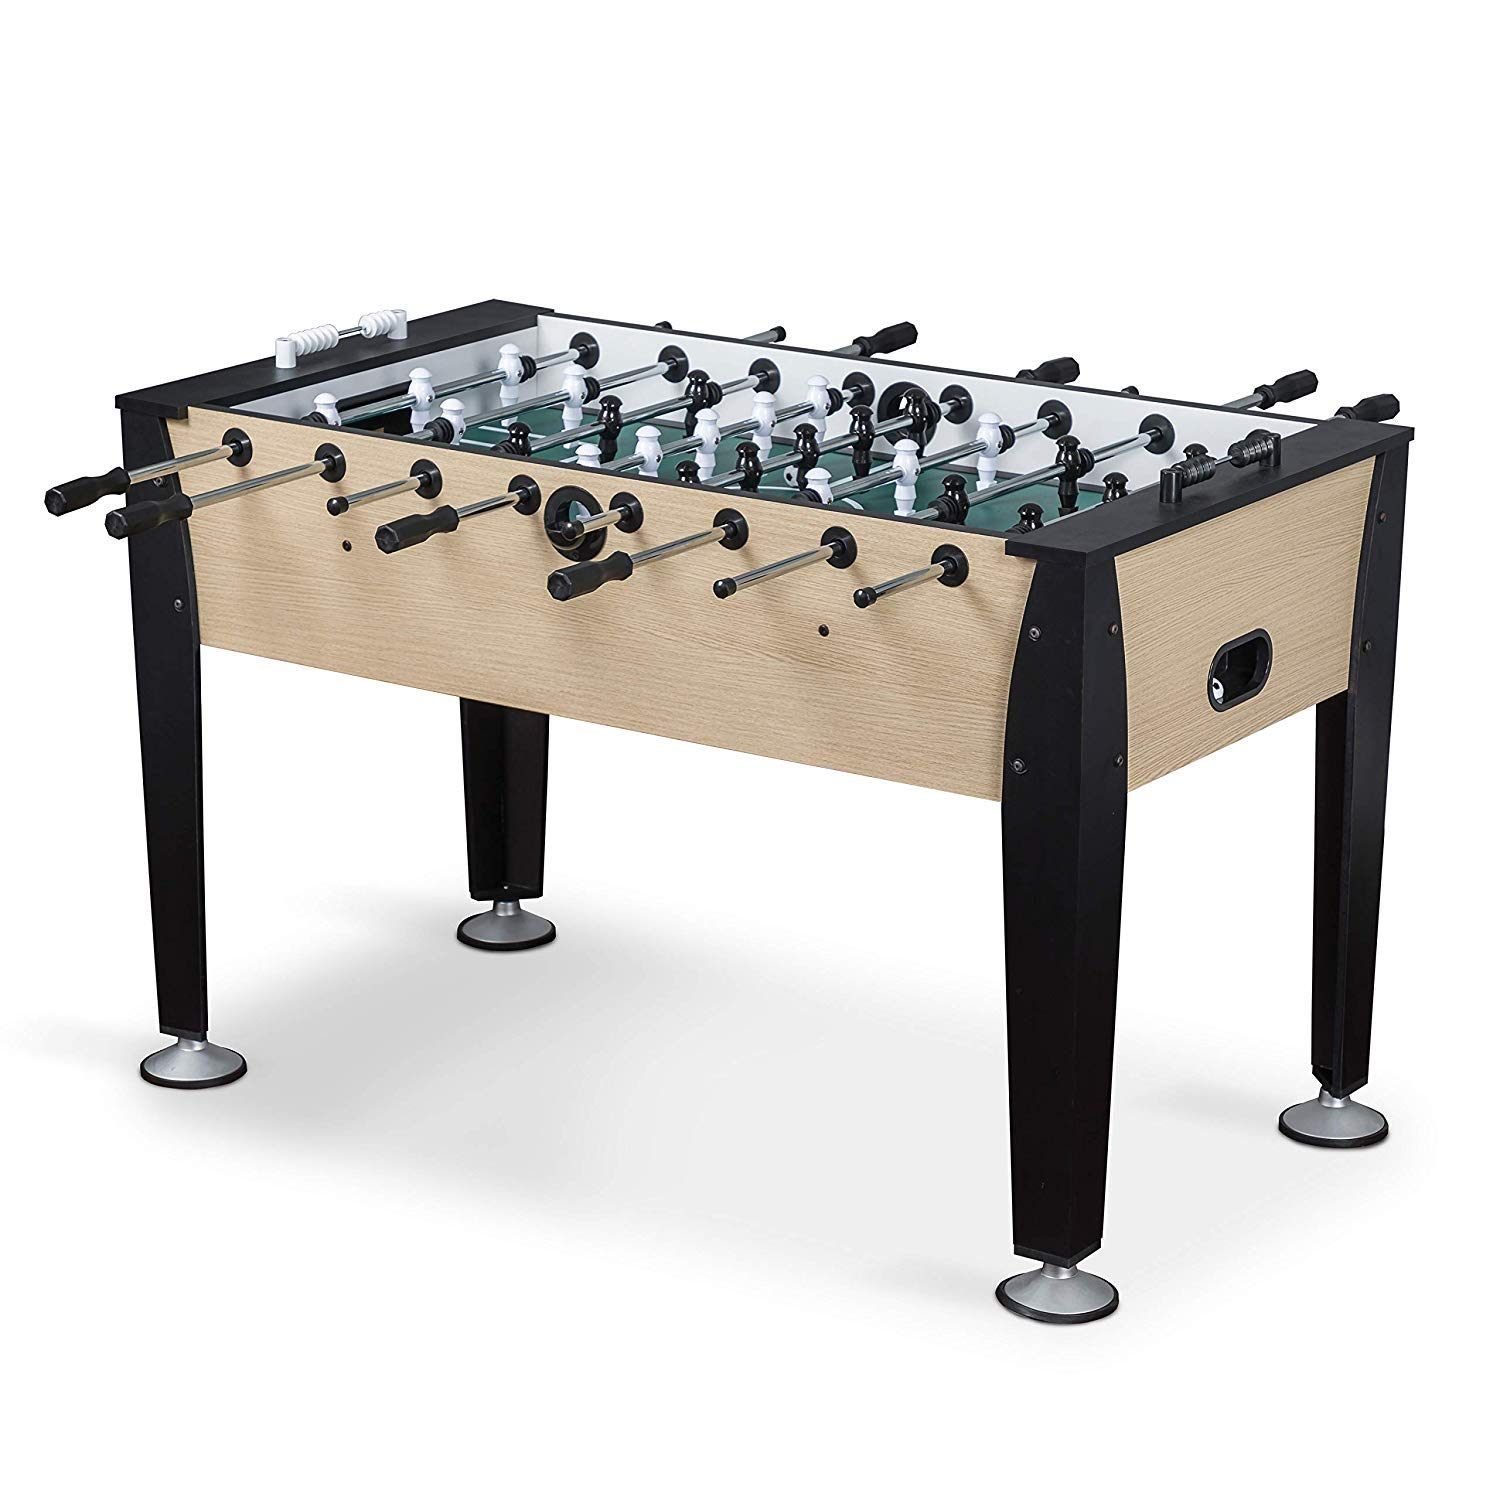 EastPoint Sports Preston Foosball Table Game - 54 inches - Features Hollow Steel Player Rods, Bead Style Scoring, and Includes 2 Foosball Balls by EastPoint Sports